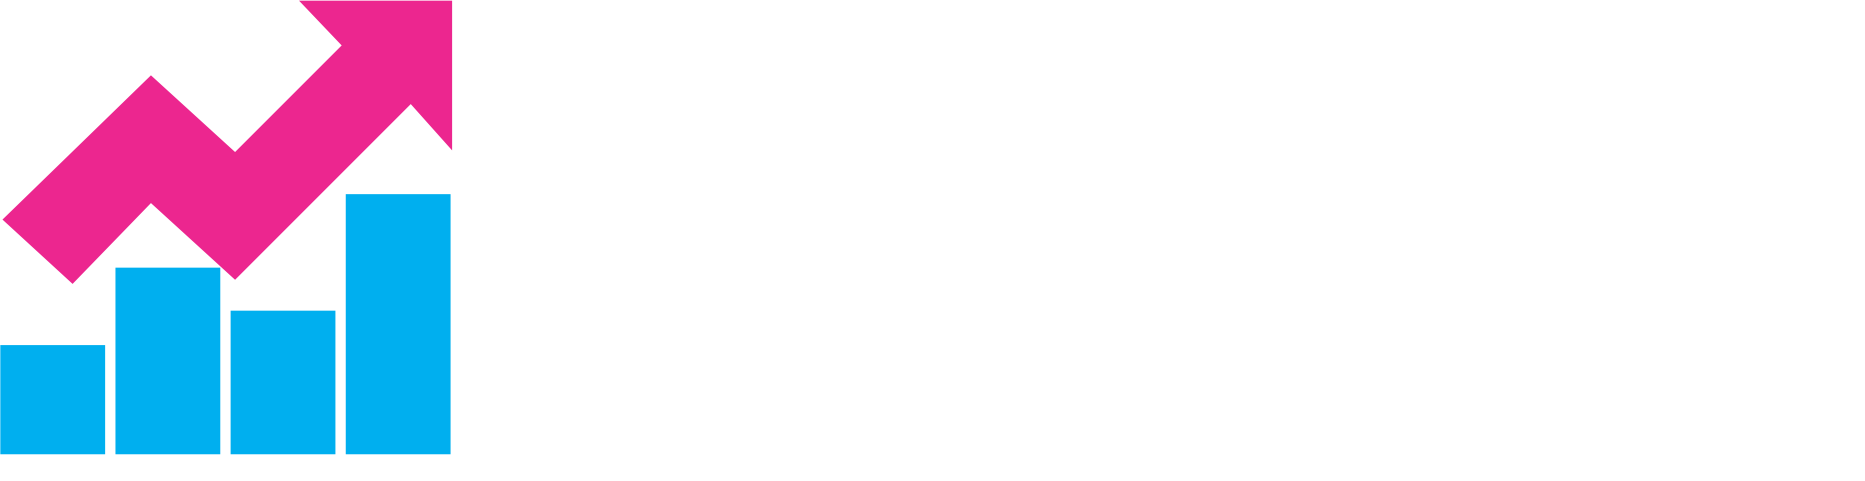 iCount Cloud Accounting